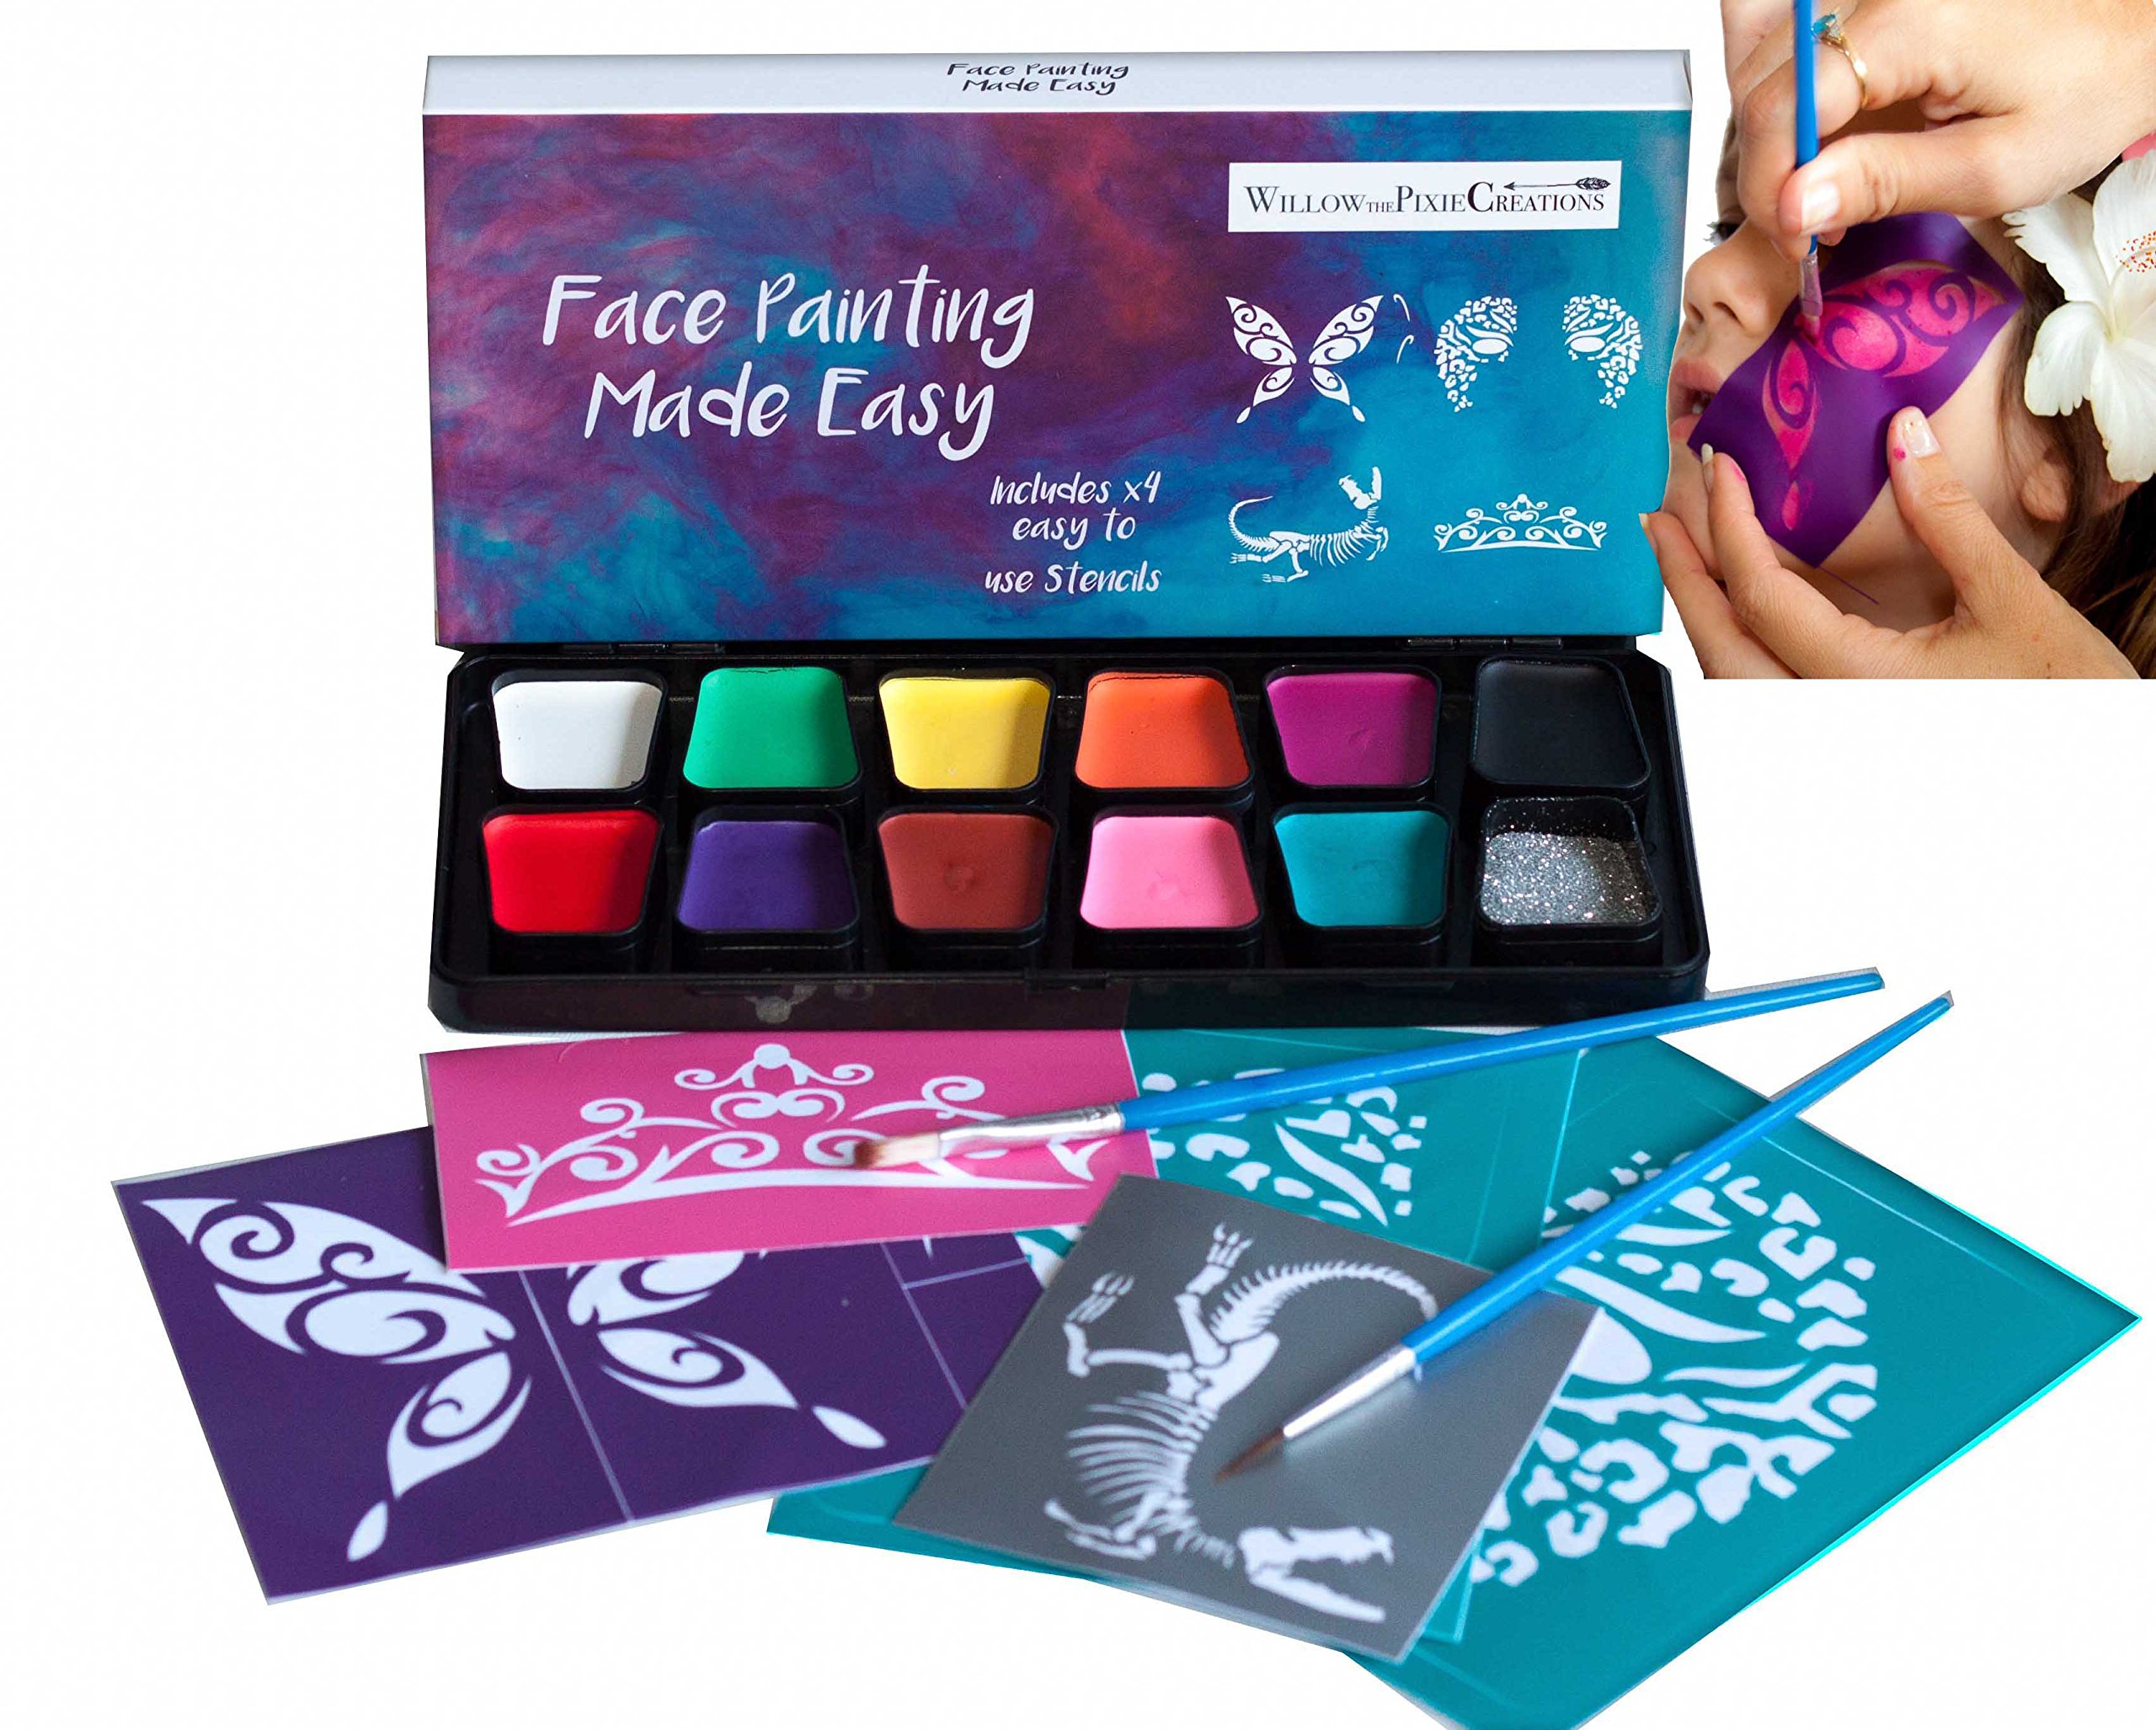 Face Paint Kit, Face Paint Kit With Stencils, Face Painting Kit - Face Painting Kit With Stencils By Willow The Pixie Creations - Non Toxic, 11 Vibrant Colours, Glitter, Hypo Allergenic, Paraben Free,